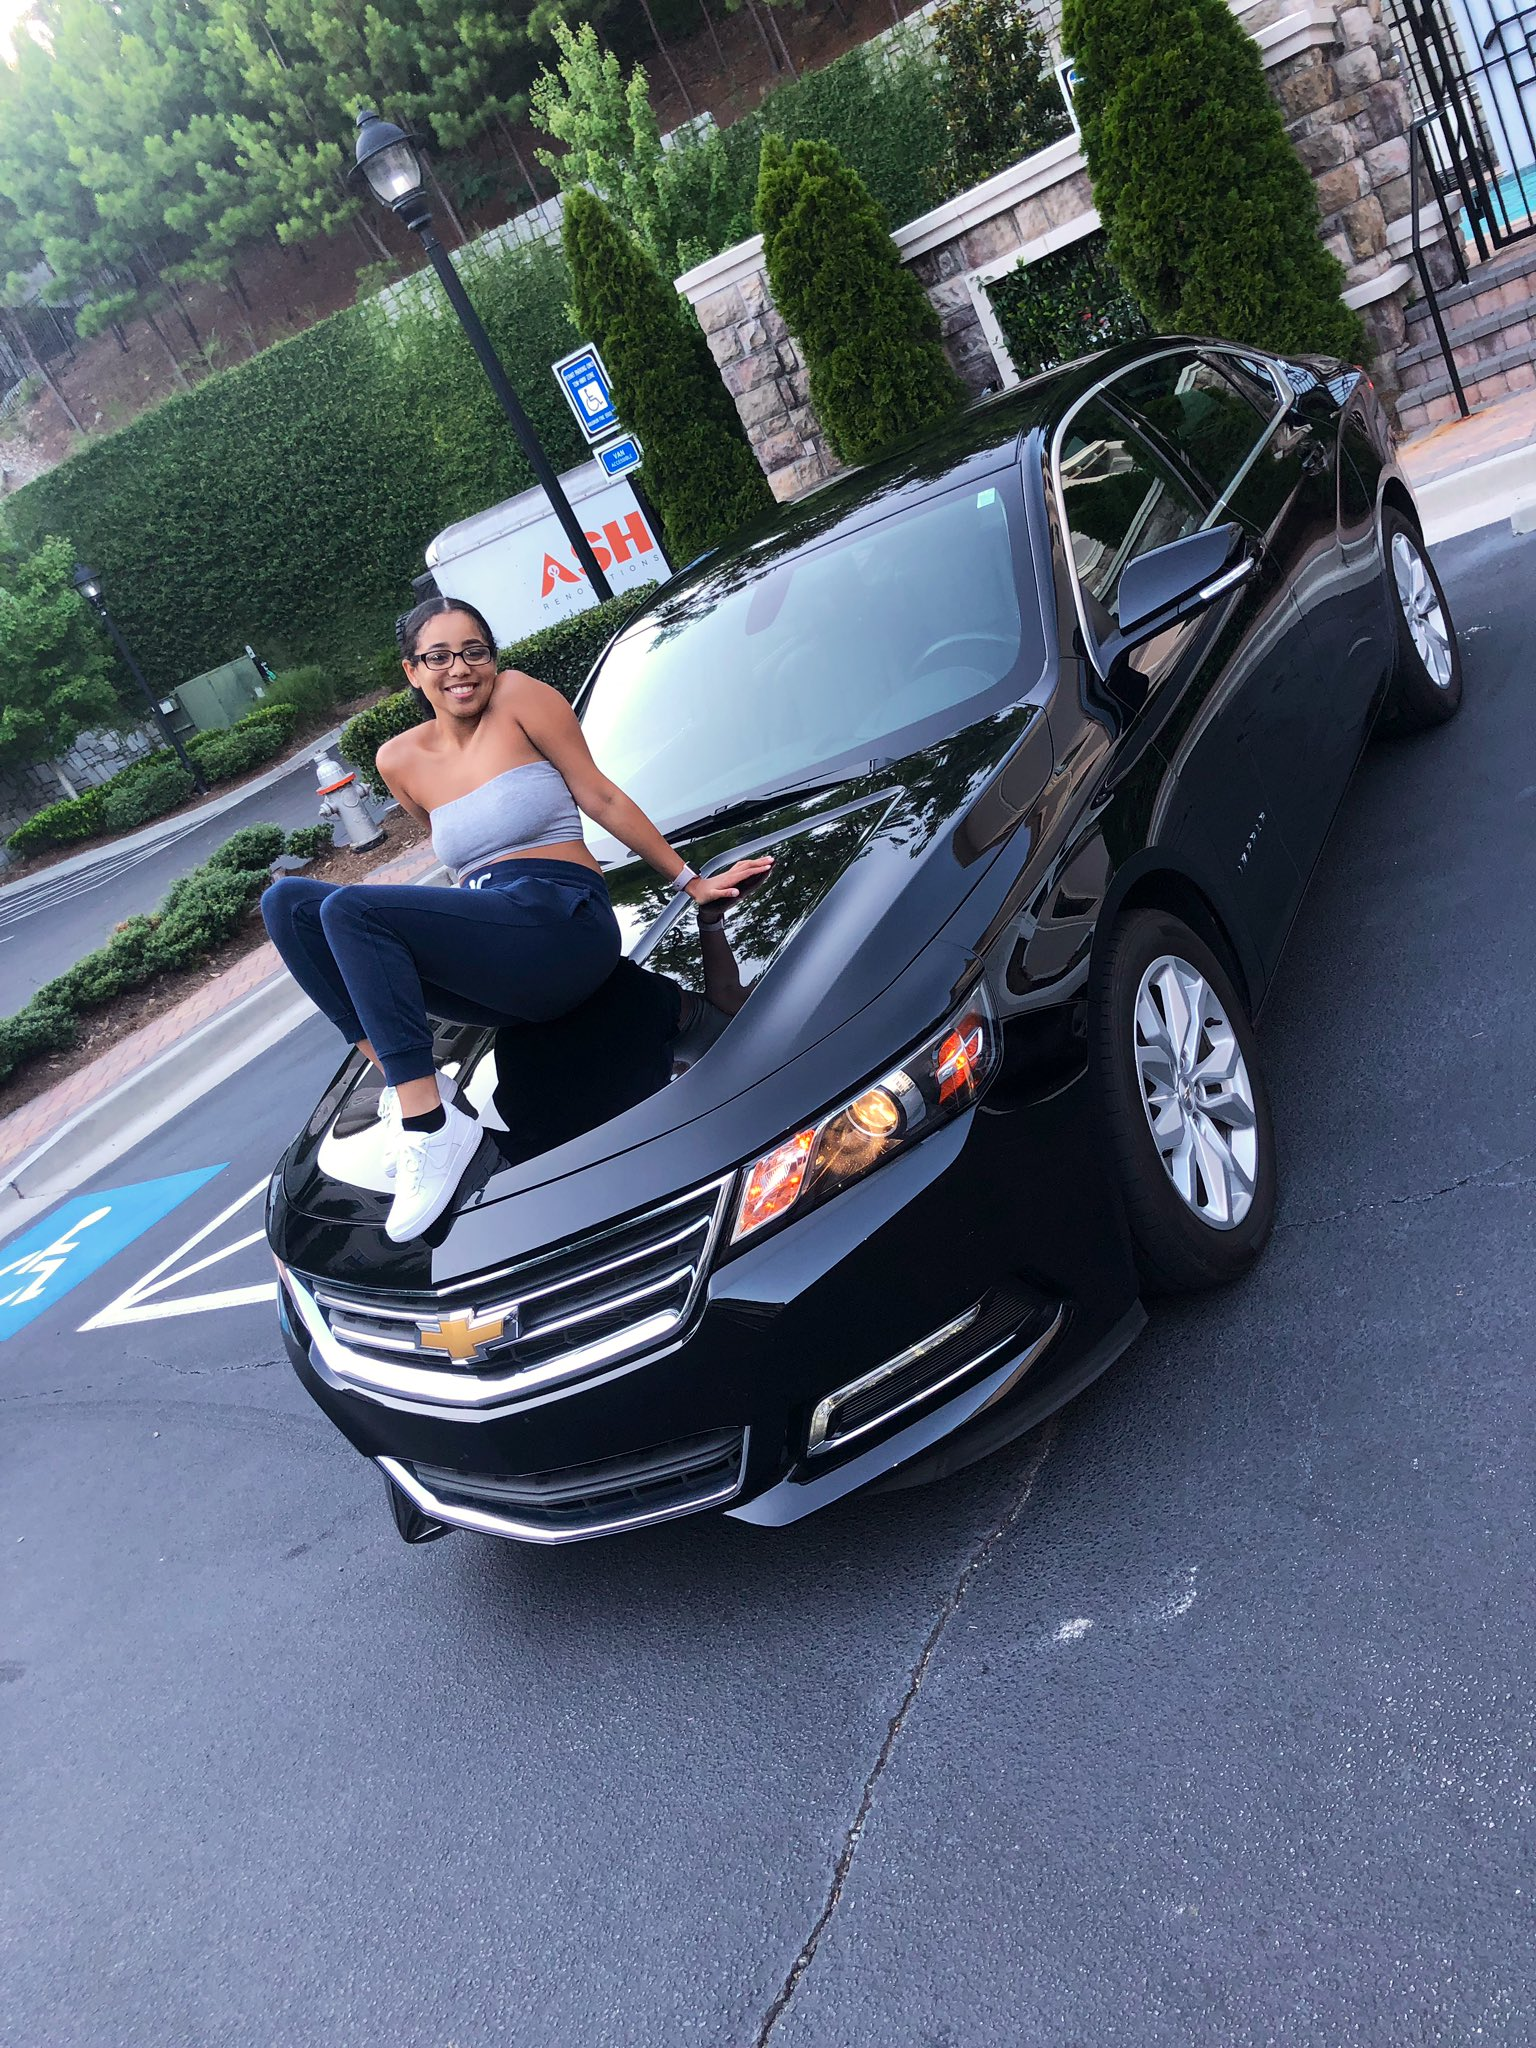 Ballgame On Twitter Surprised My Girlfriend Wit A New Car